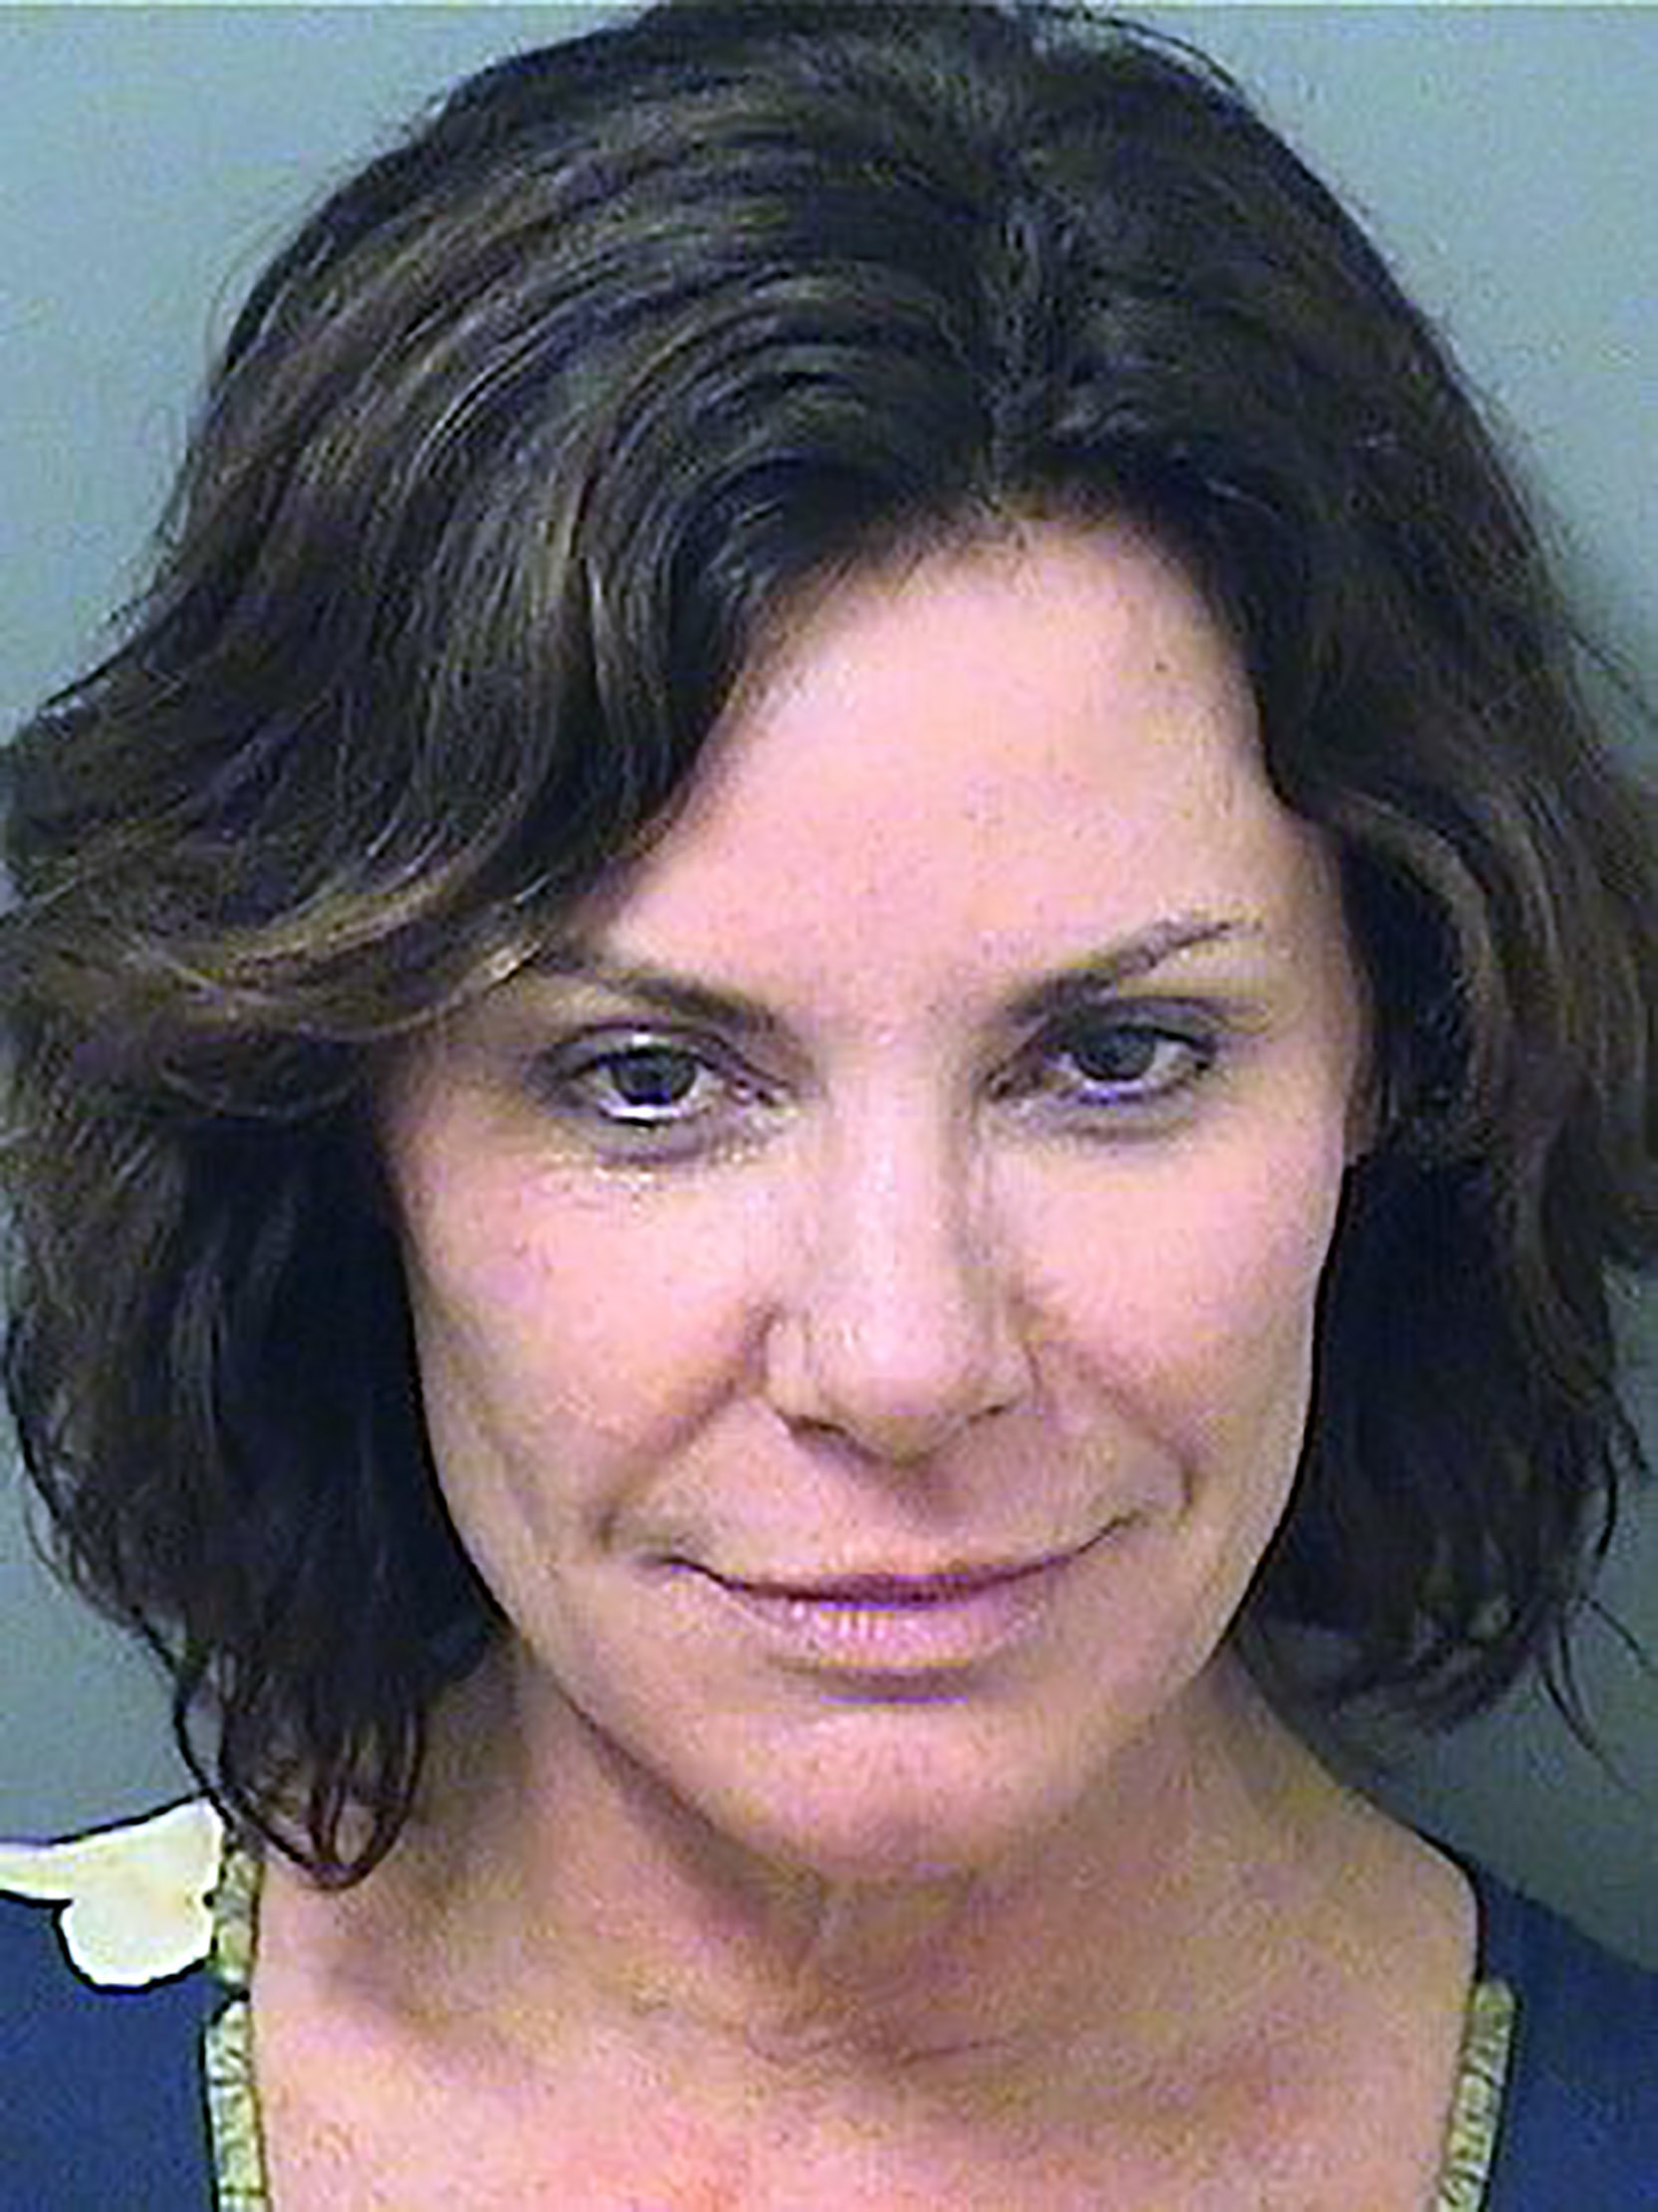 Luann de Lesseps pleads not guilty in Florida